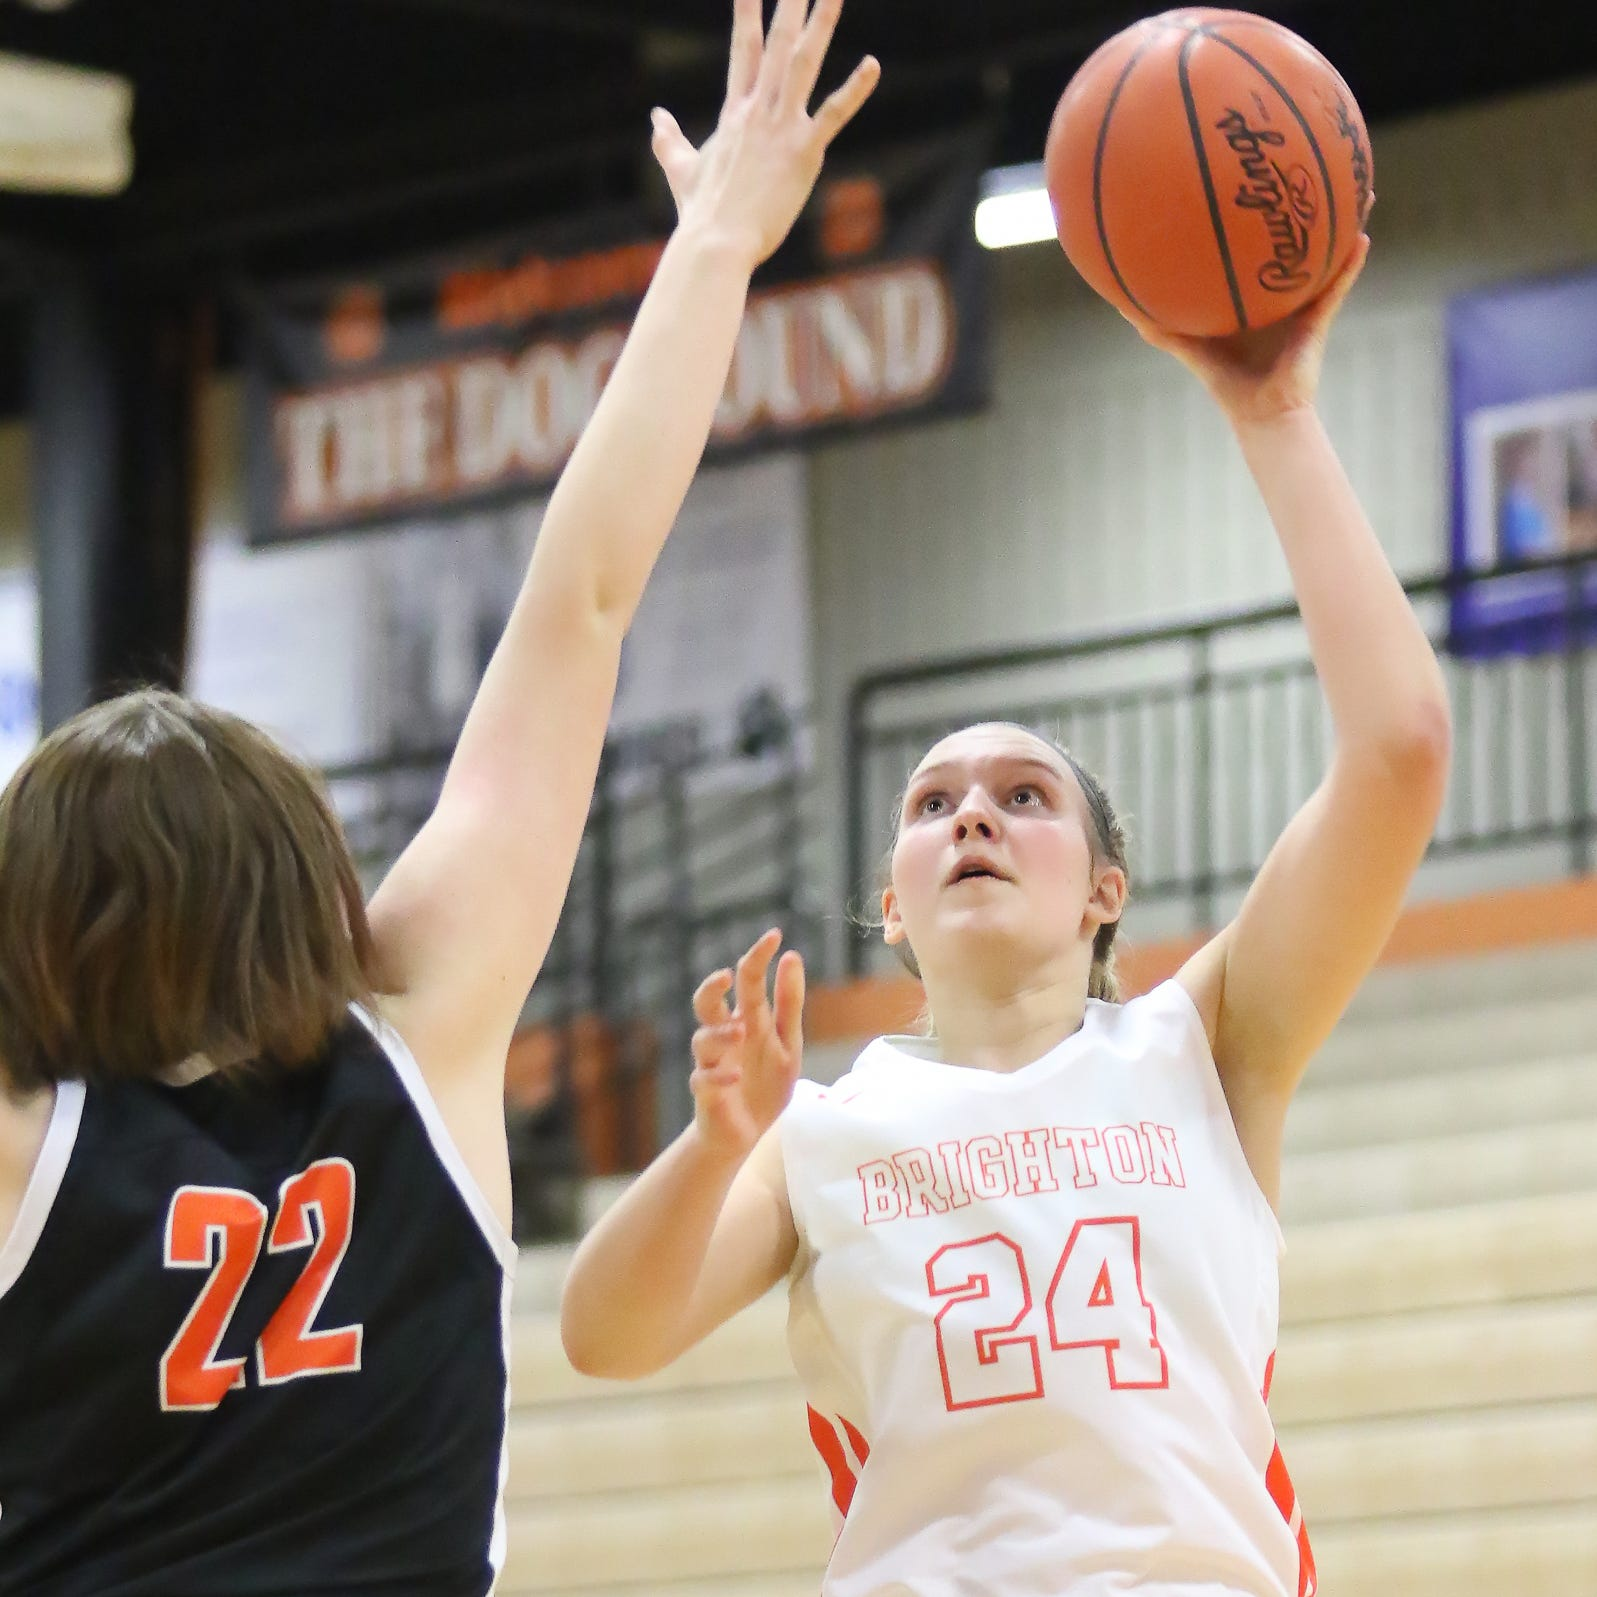 Brighton earns shot at Wayne in KLAA championship girls basketball game